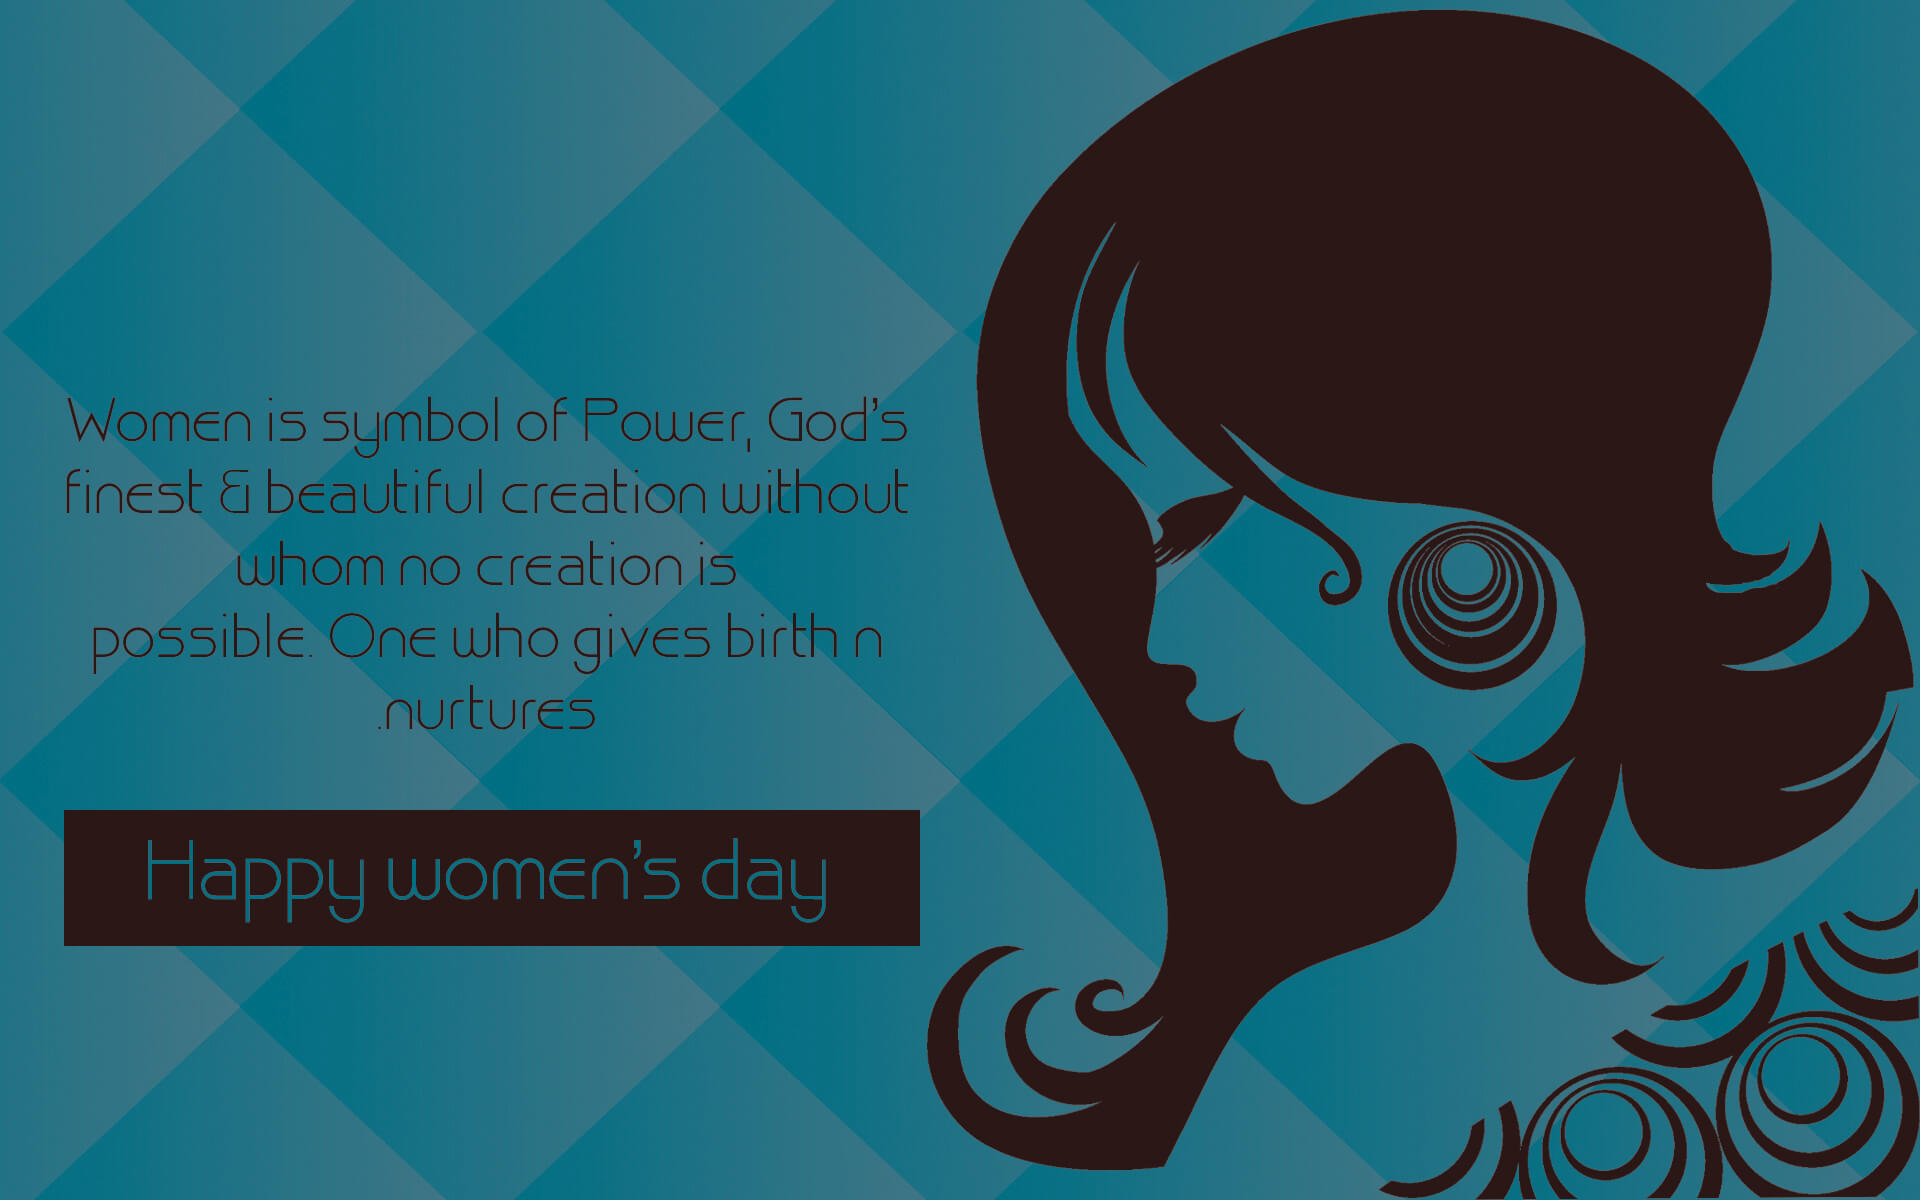 celebrate happy womens day march 8 quotes hd wallpaper